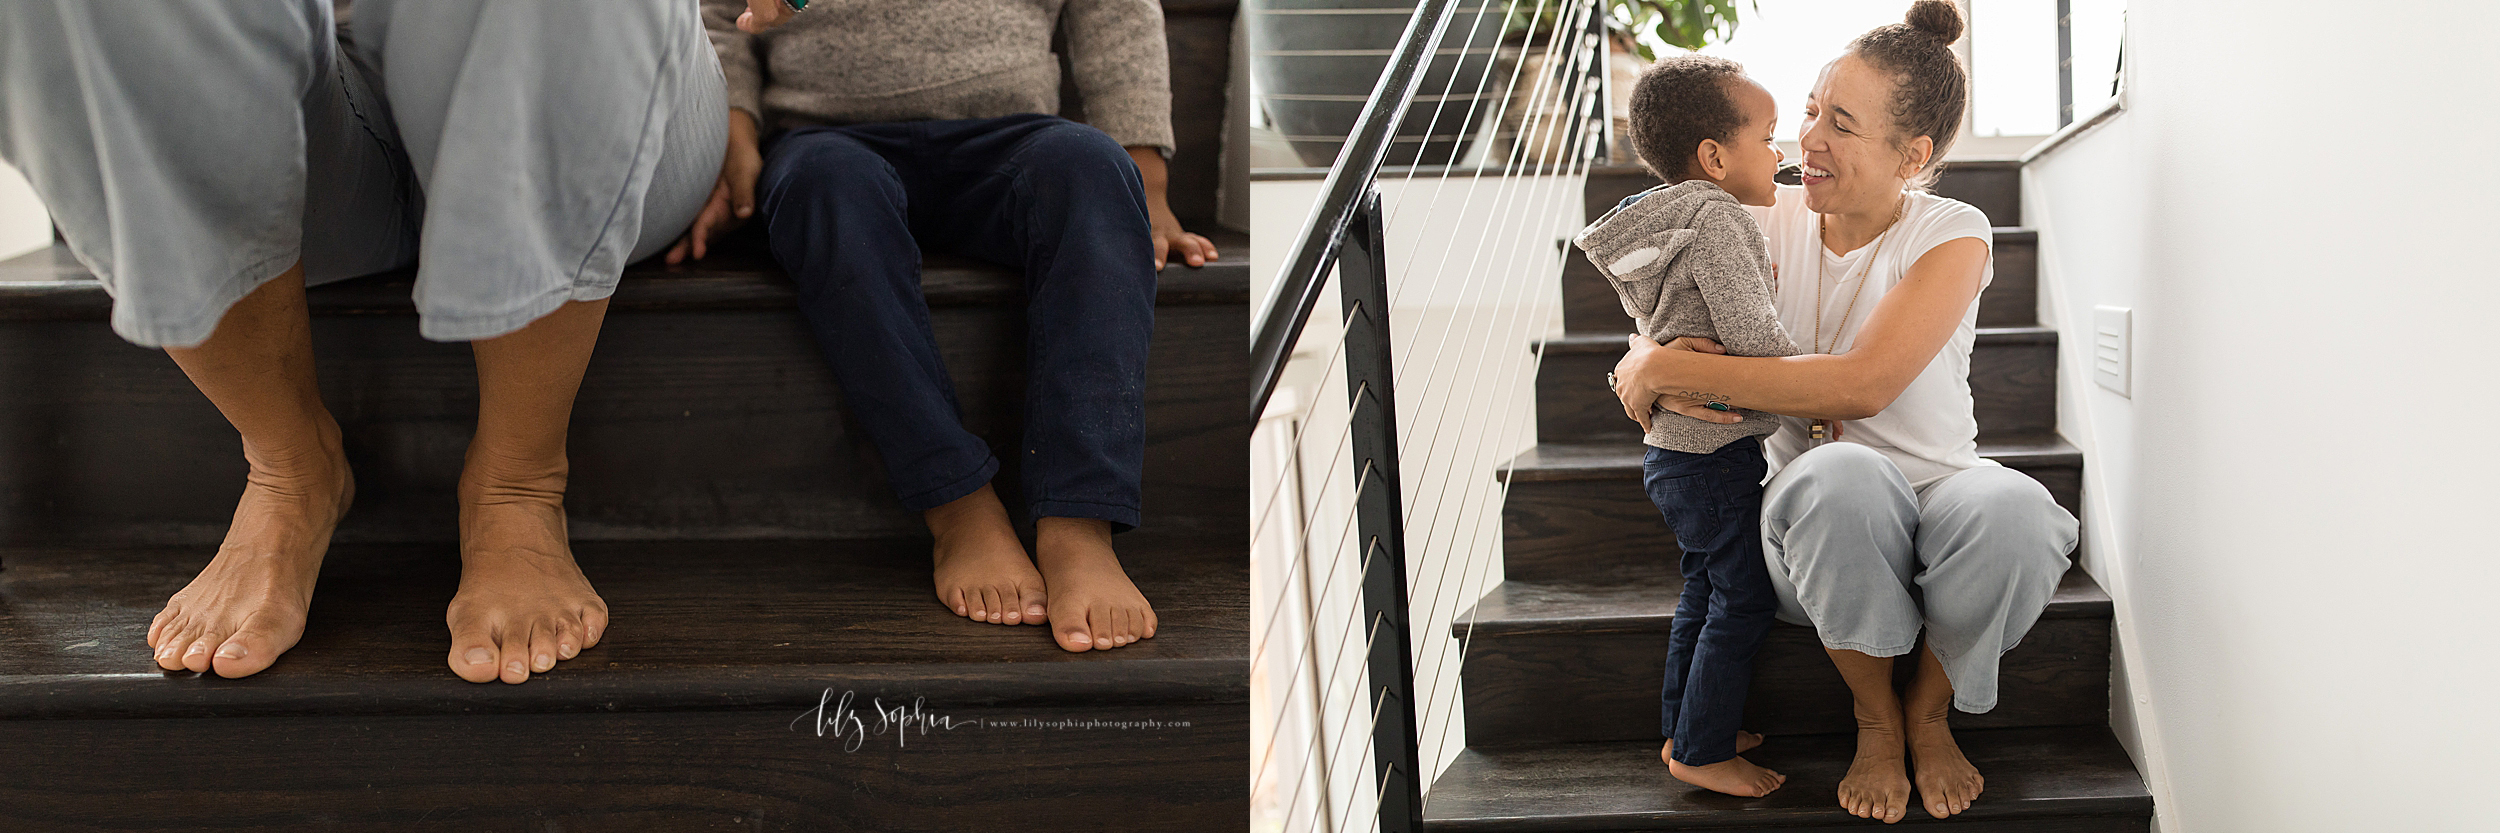 atlanta-midtown-inman-grant-park-beltline-old-fourth-ward-lily-sophia-photography-in-home-lifestyle-mommy-and-me-session-family-photographer-toddler-boy_0417.jpg